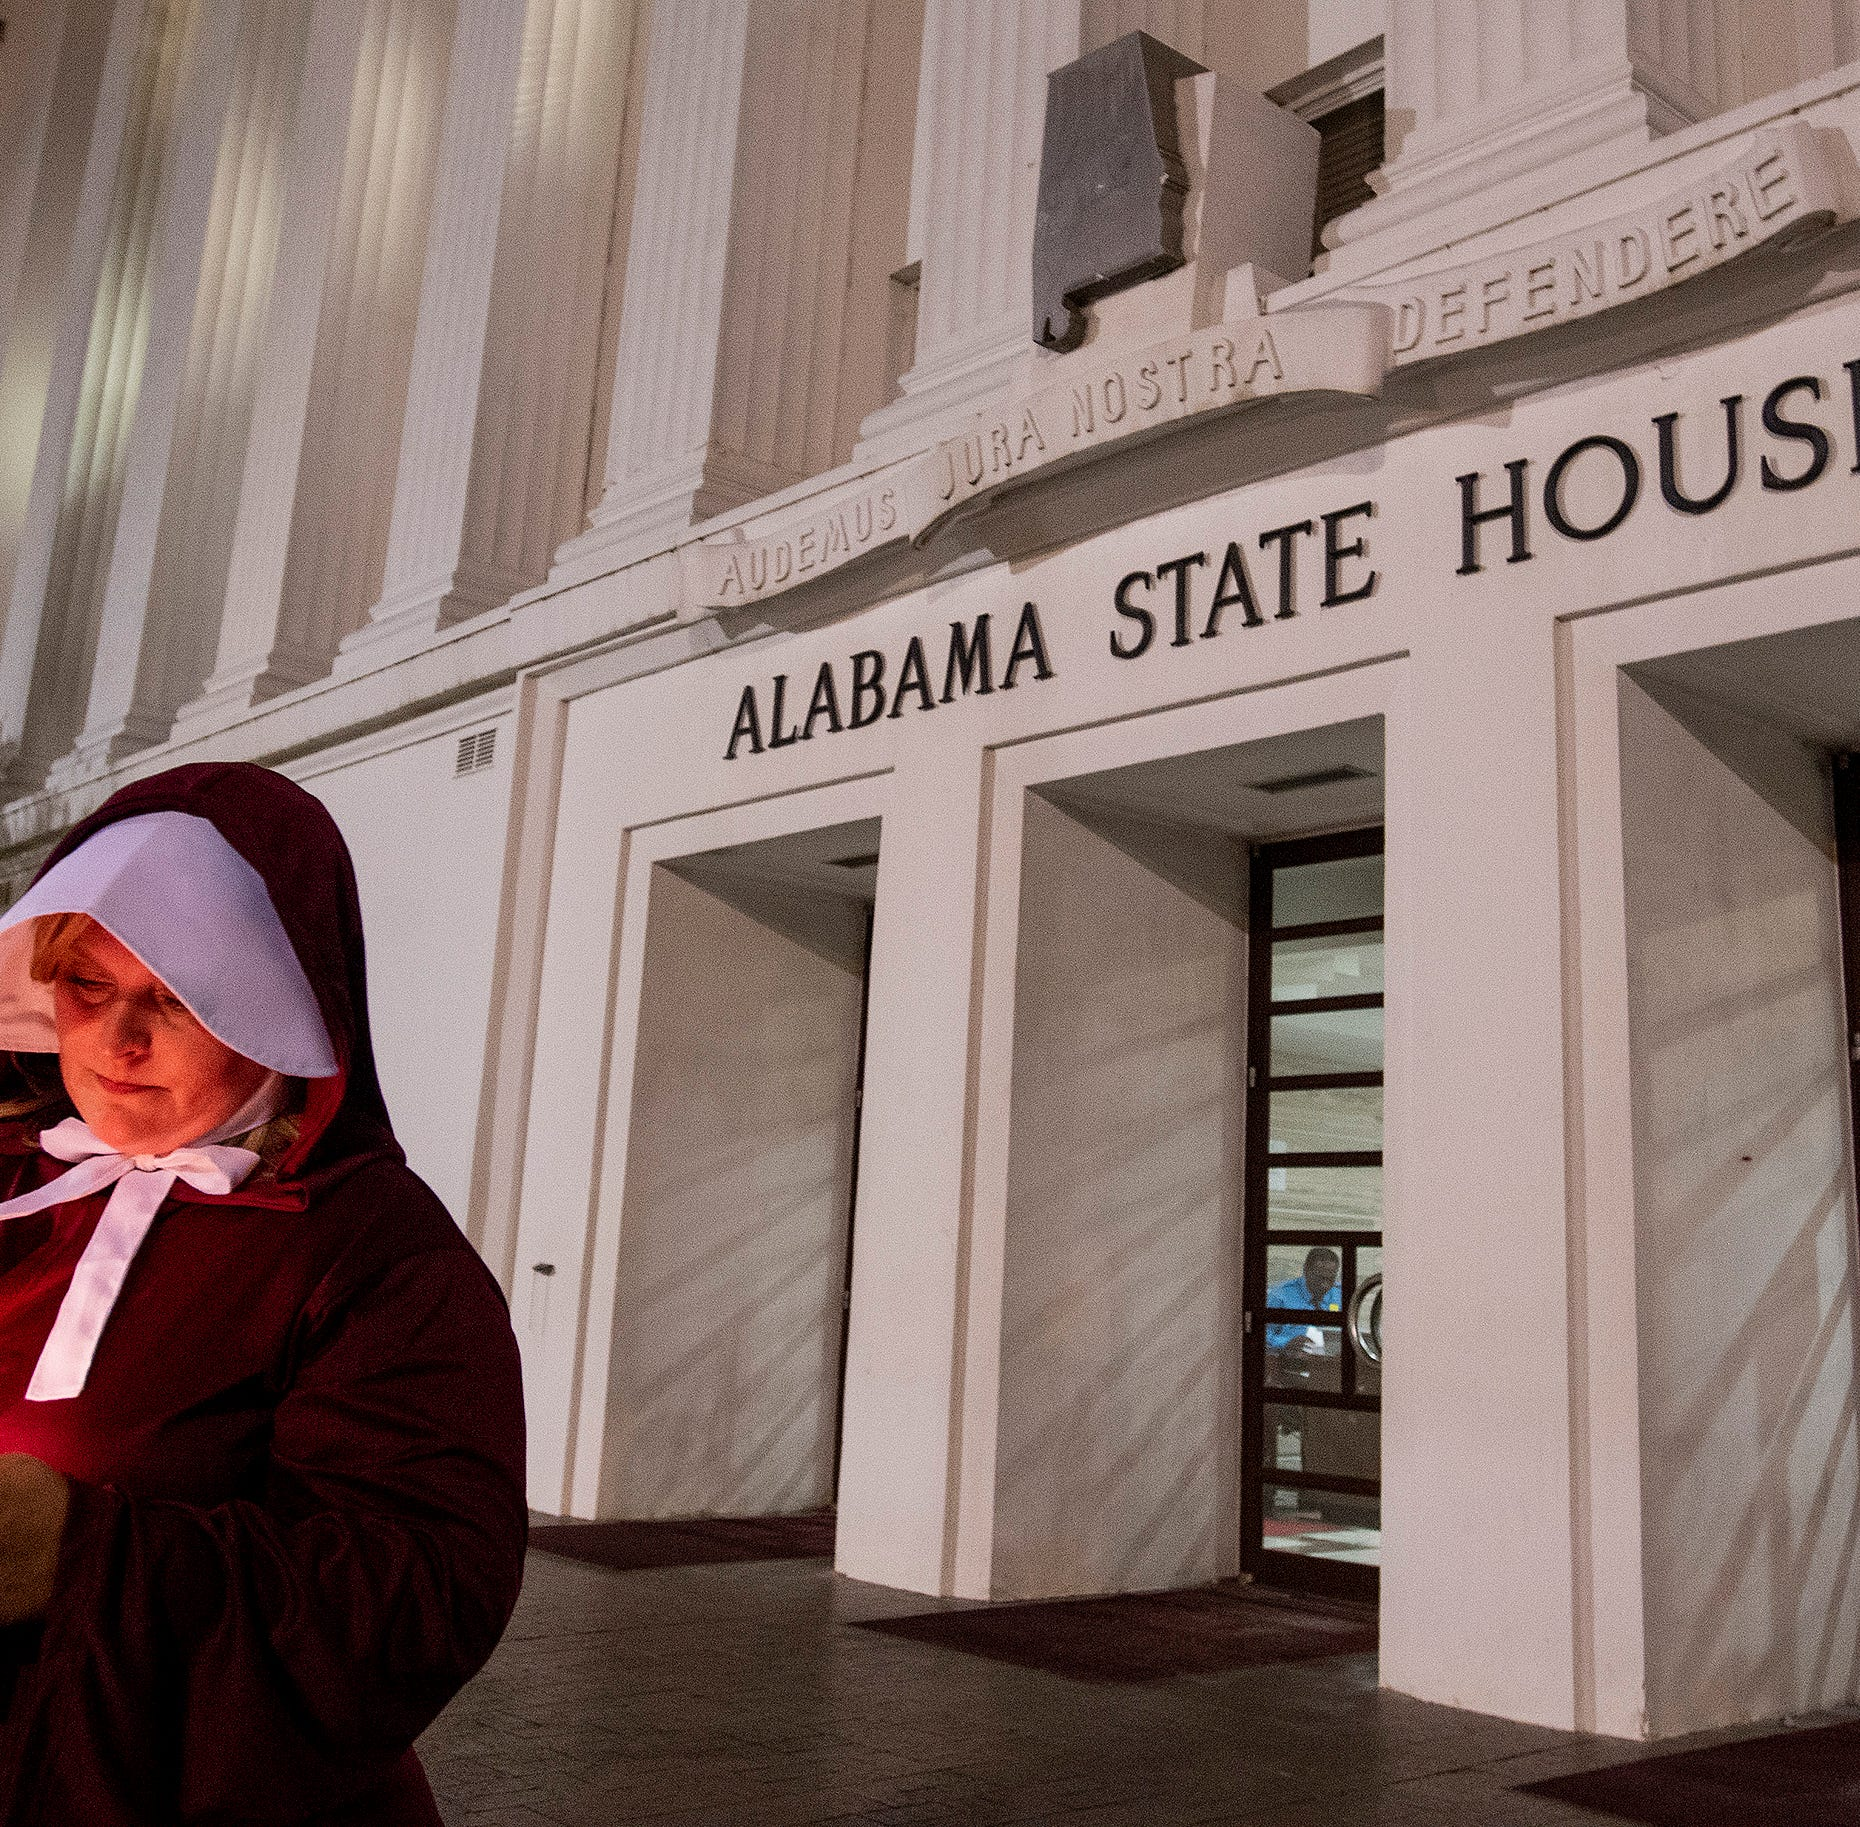 How does Alabama's near-total abortion ban bill compare to Georgia's 'fetal heartbeat' law?